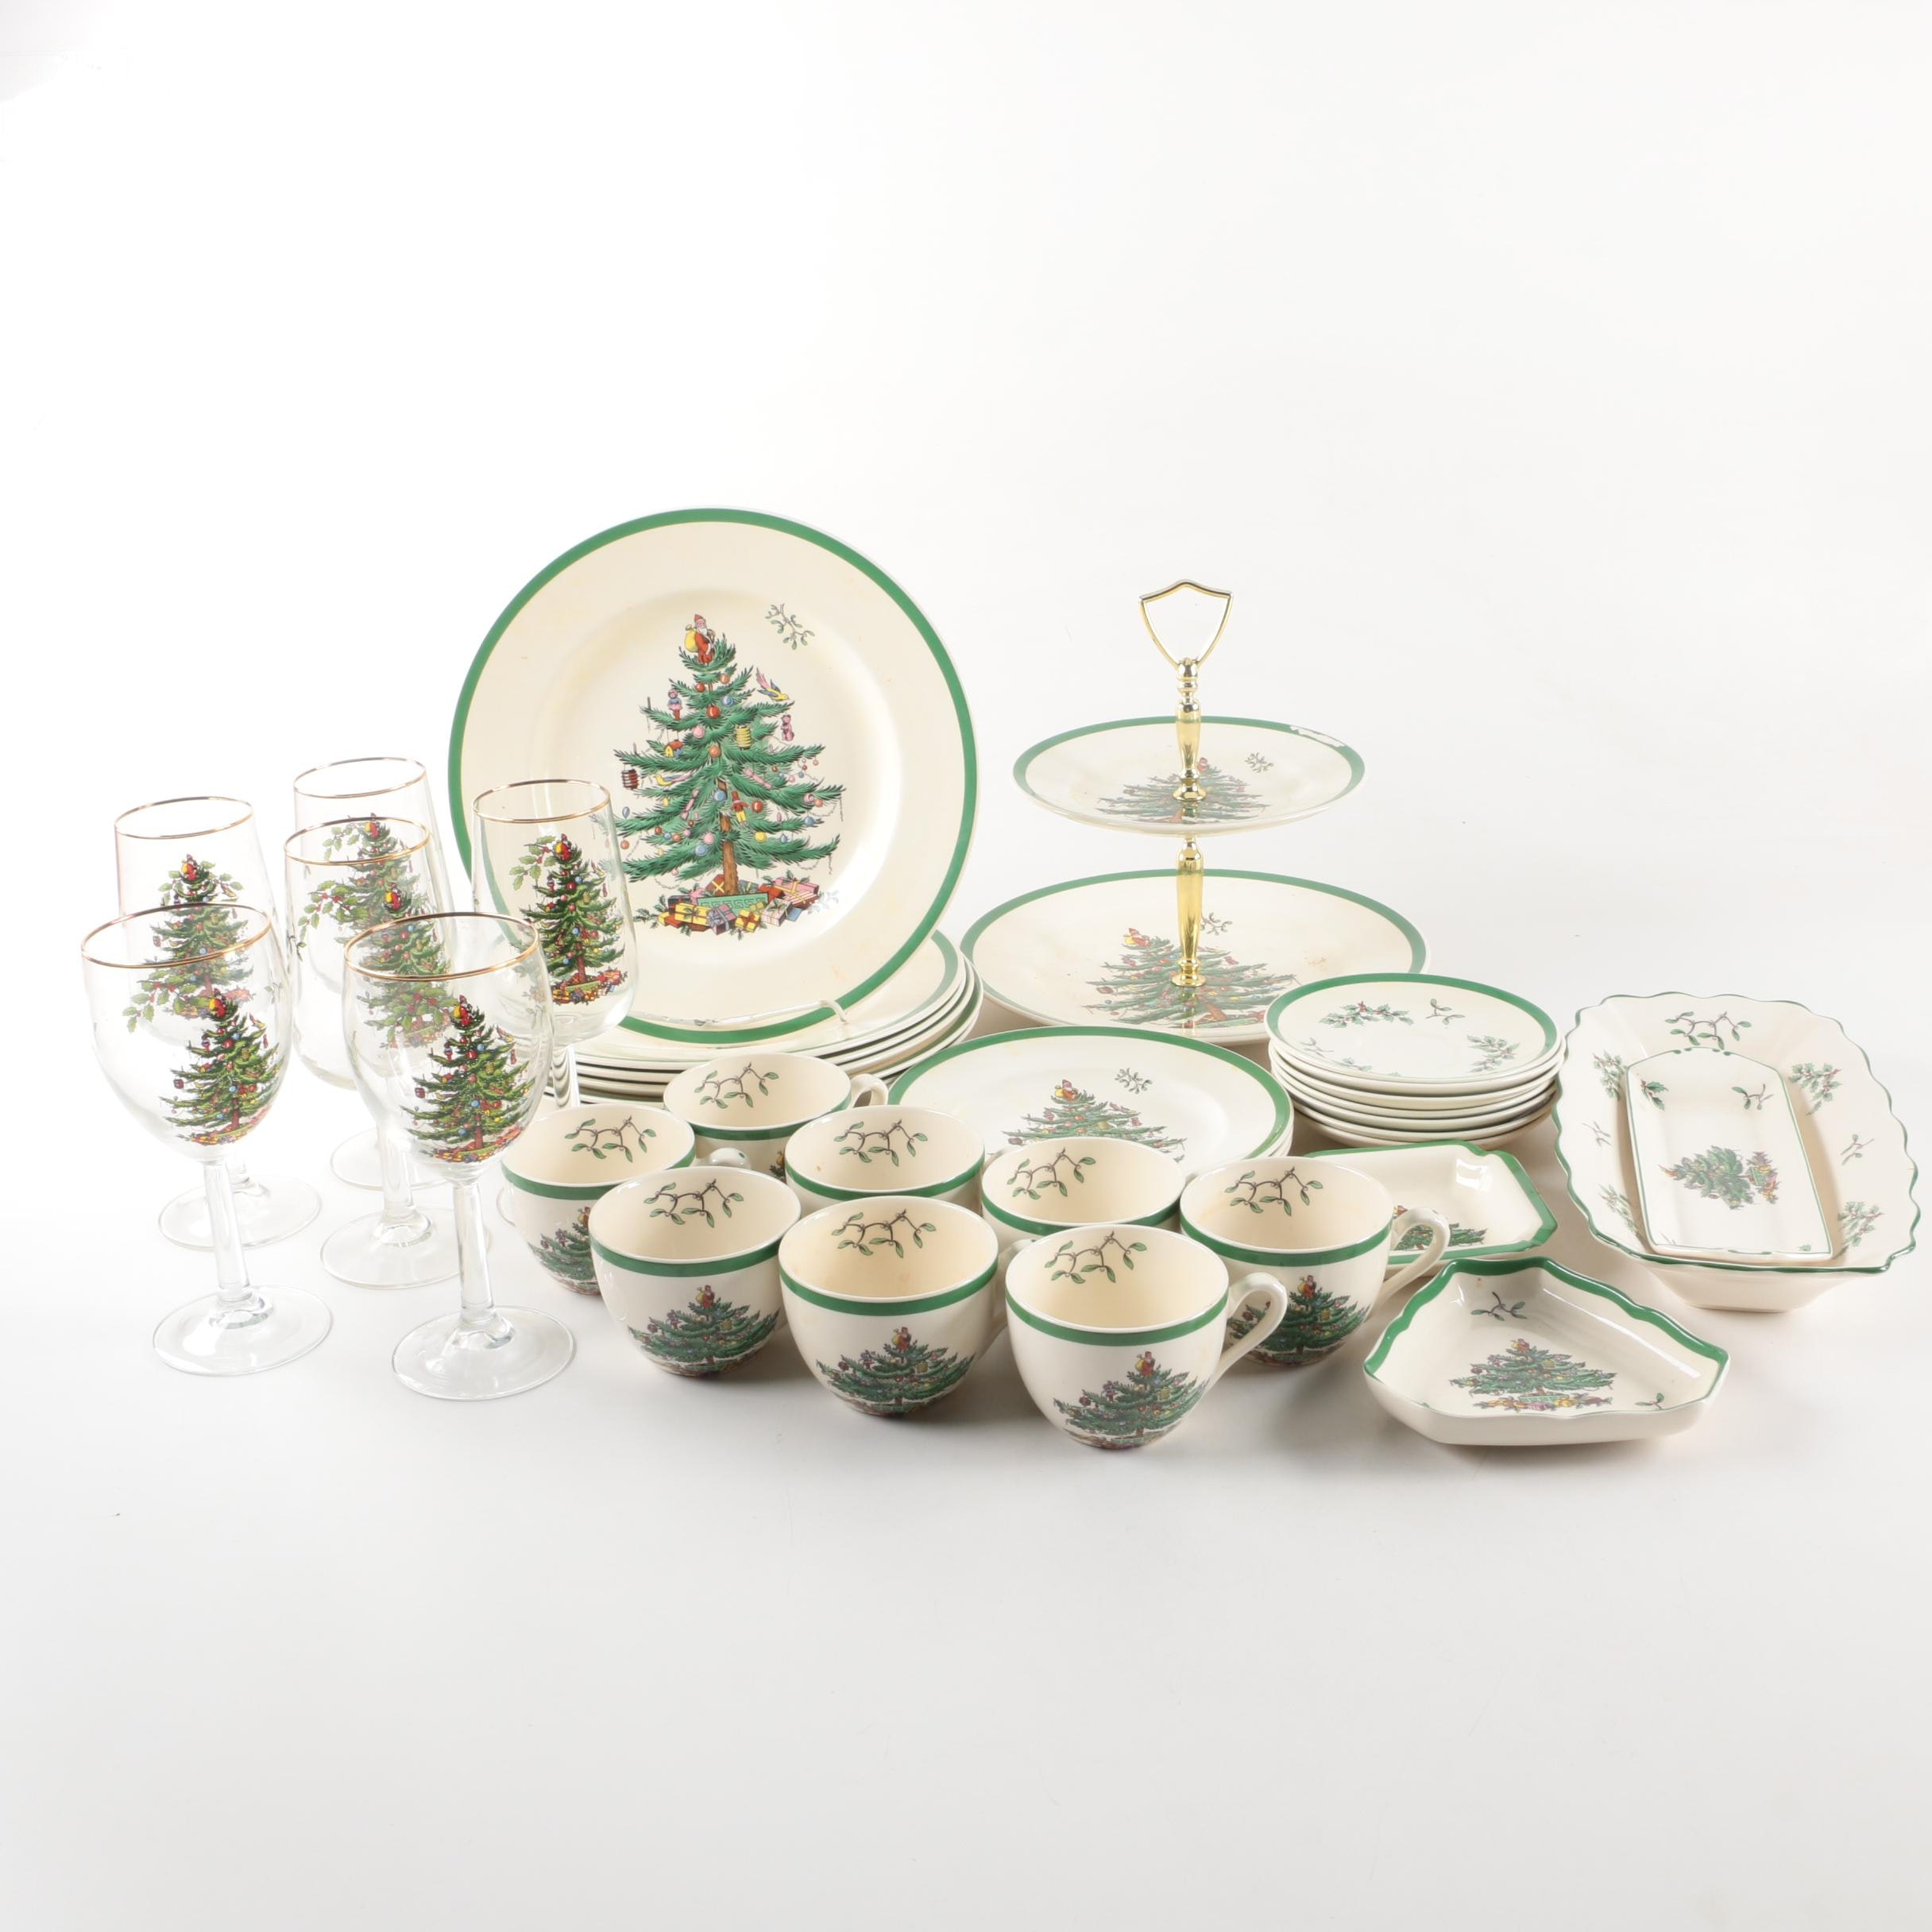 Spode  Christmas Tree  Dinnerware and Serving Dishes ... & Spode